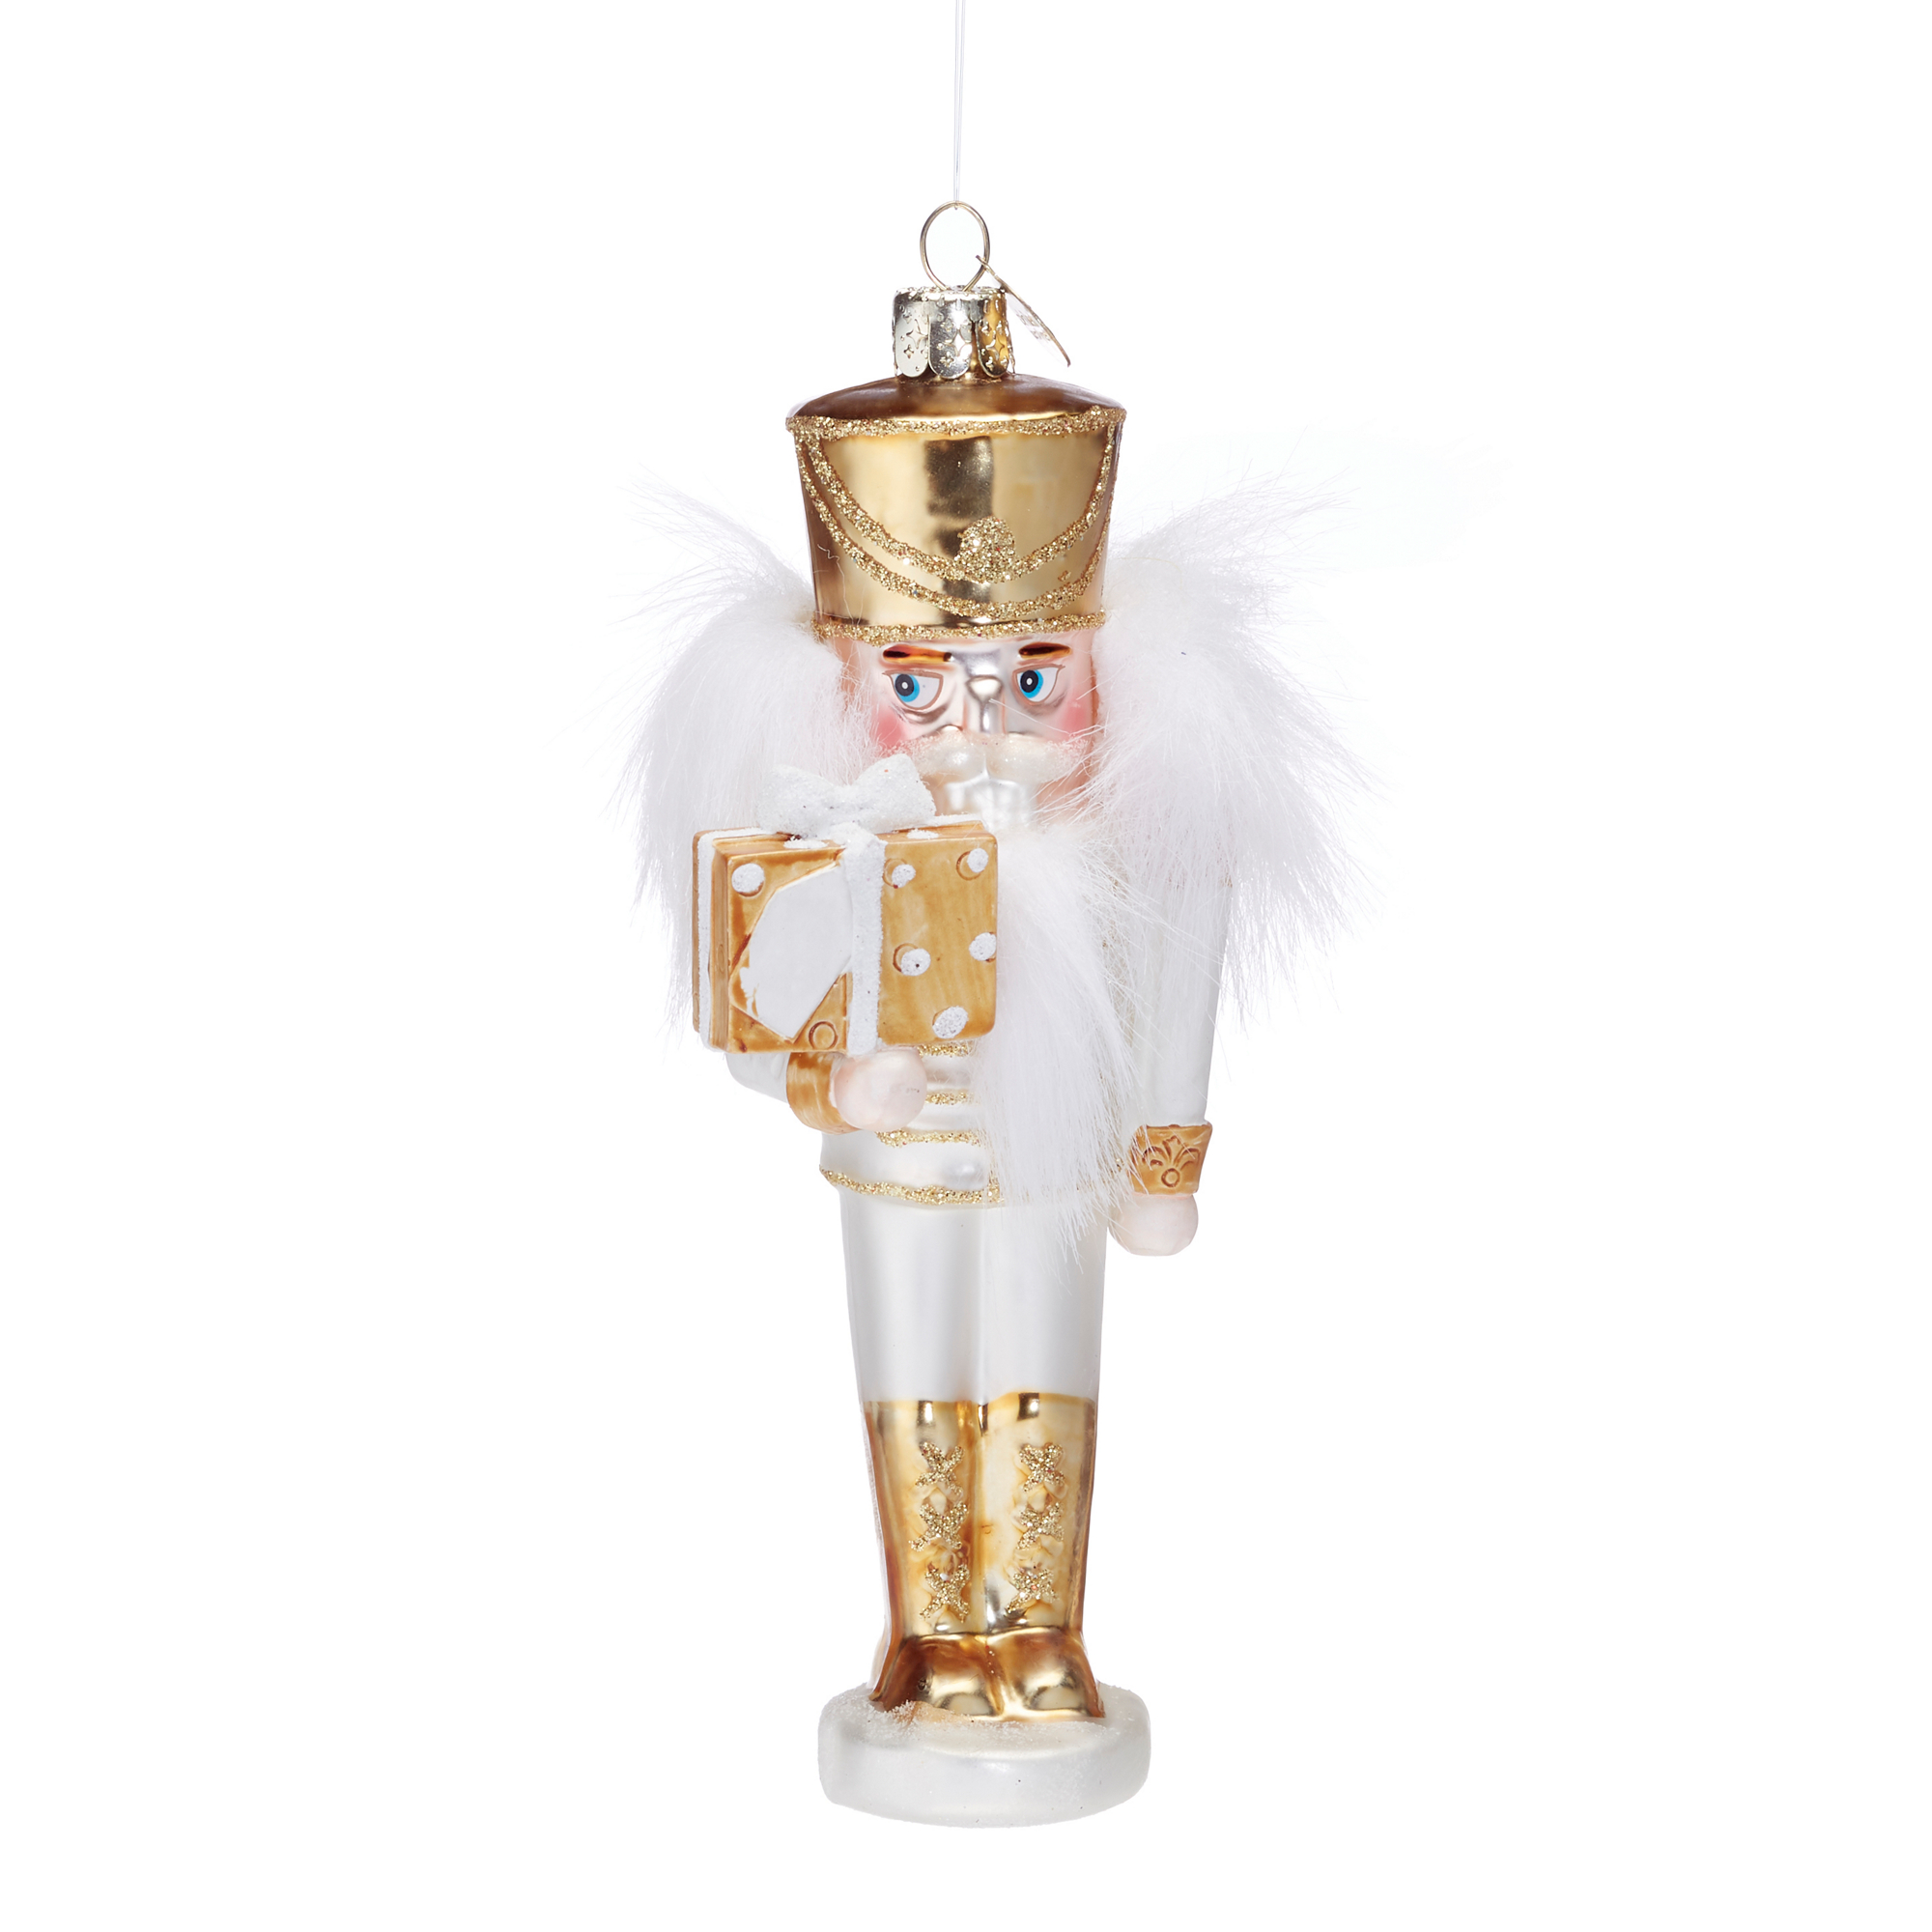 Winter Wonderland White & Gold Nutcracker Ornament